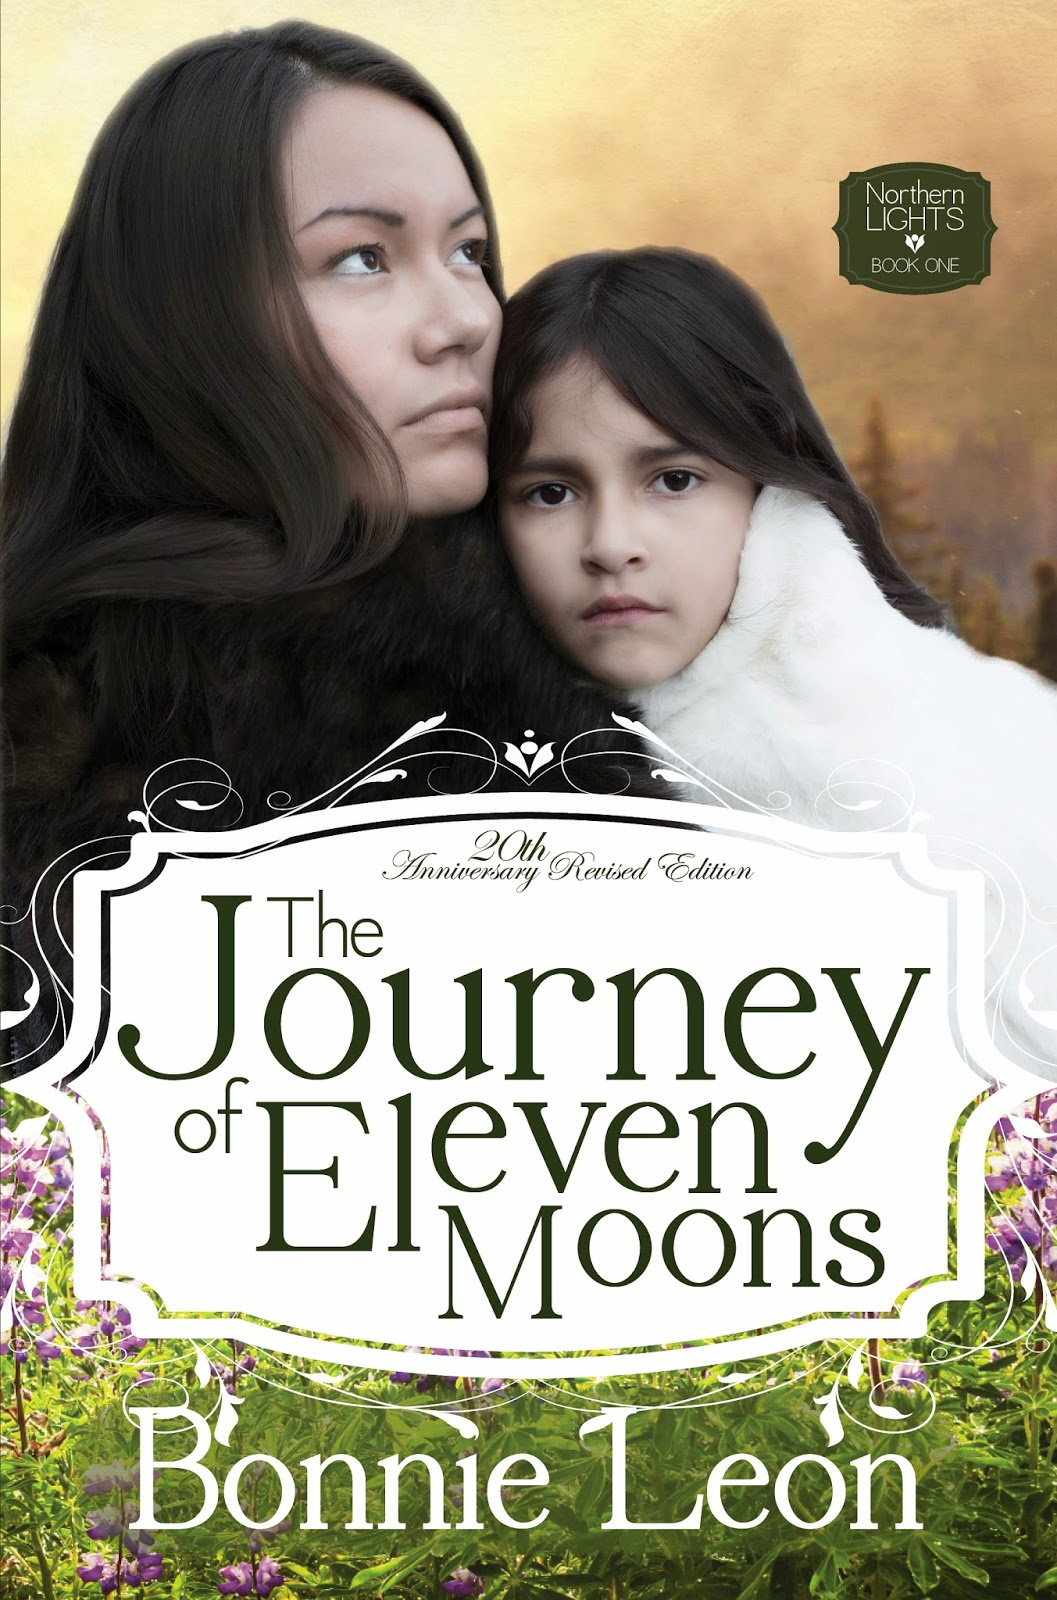 http://www.amazon.com/Journey-Eleven-Northern-Lights-Series/dp/0785279741